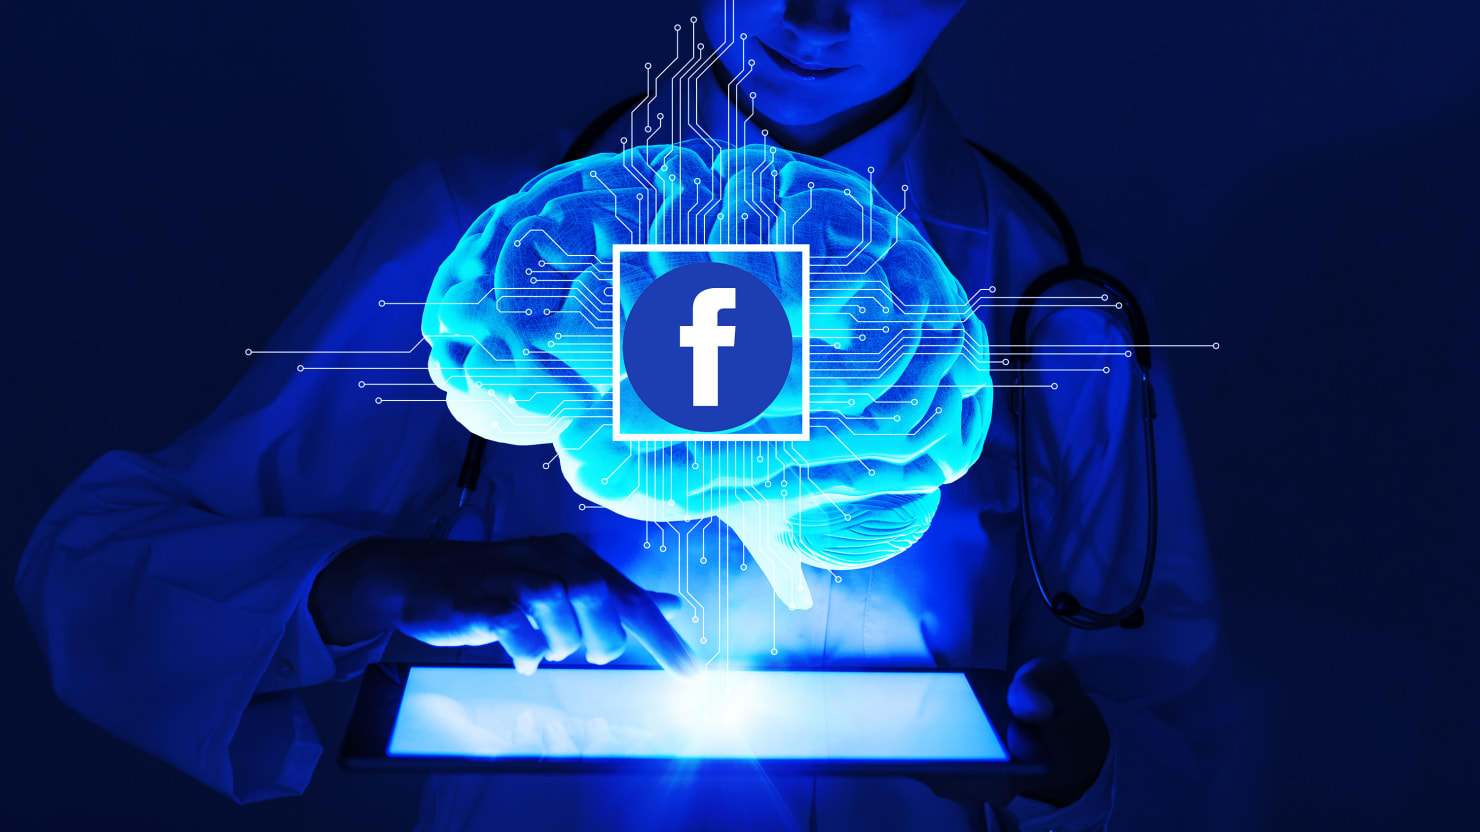 For $29, This Company Swears It Will 'Brainwash' Someone on Facebook